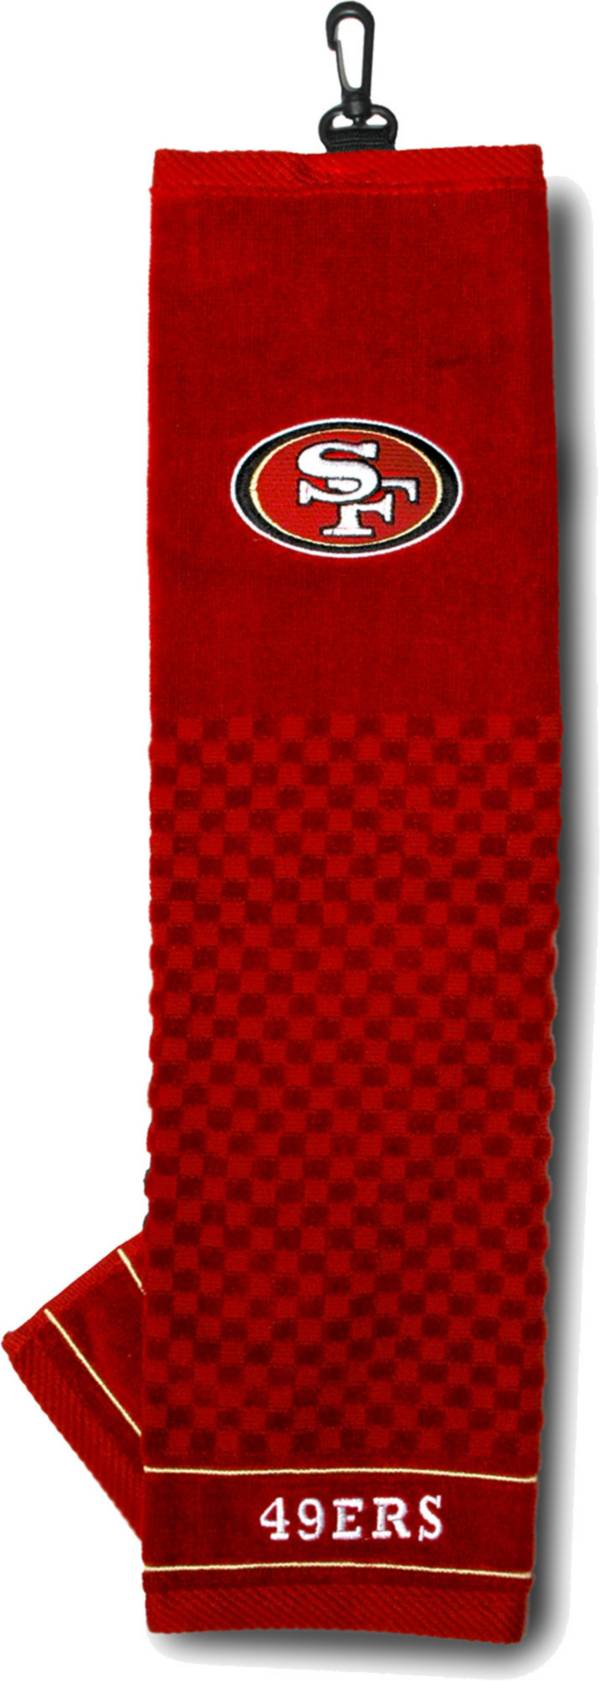 Team Golf San Francisco 49ers Embroidered Golf Towel product image